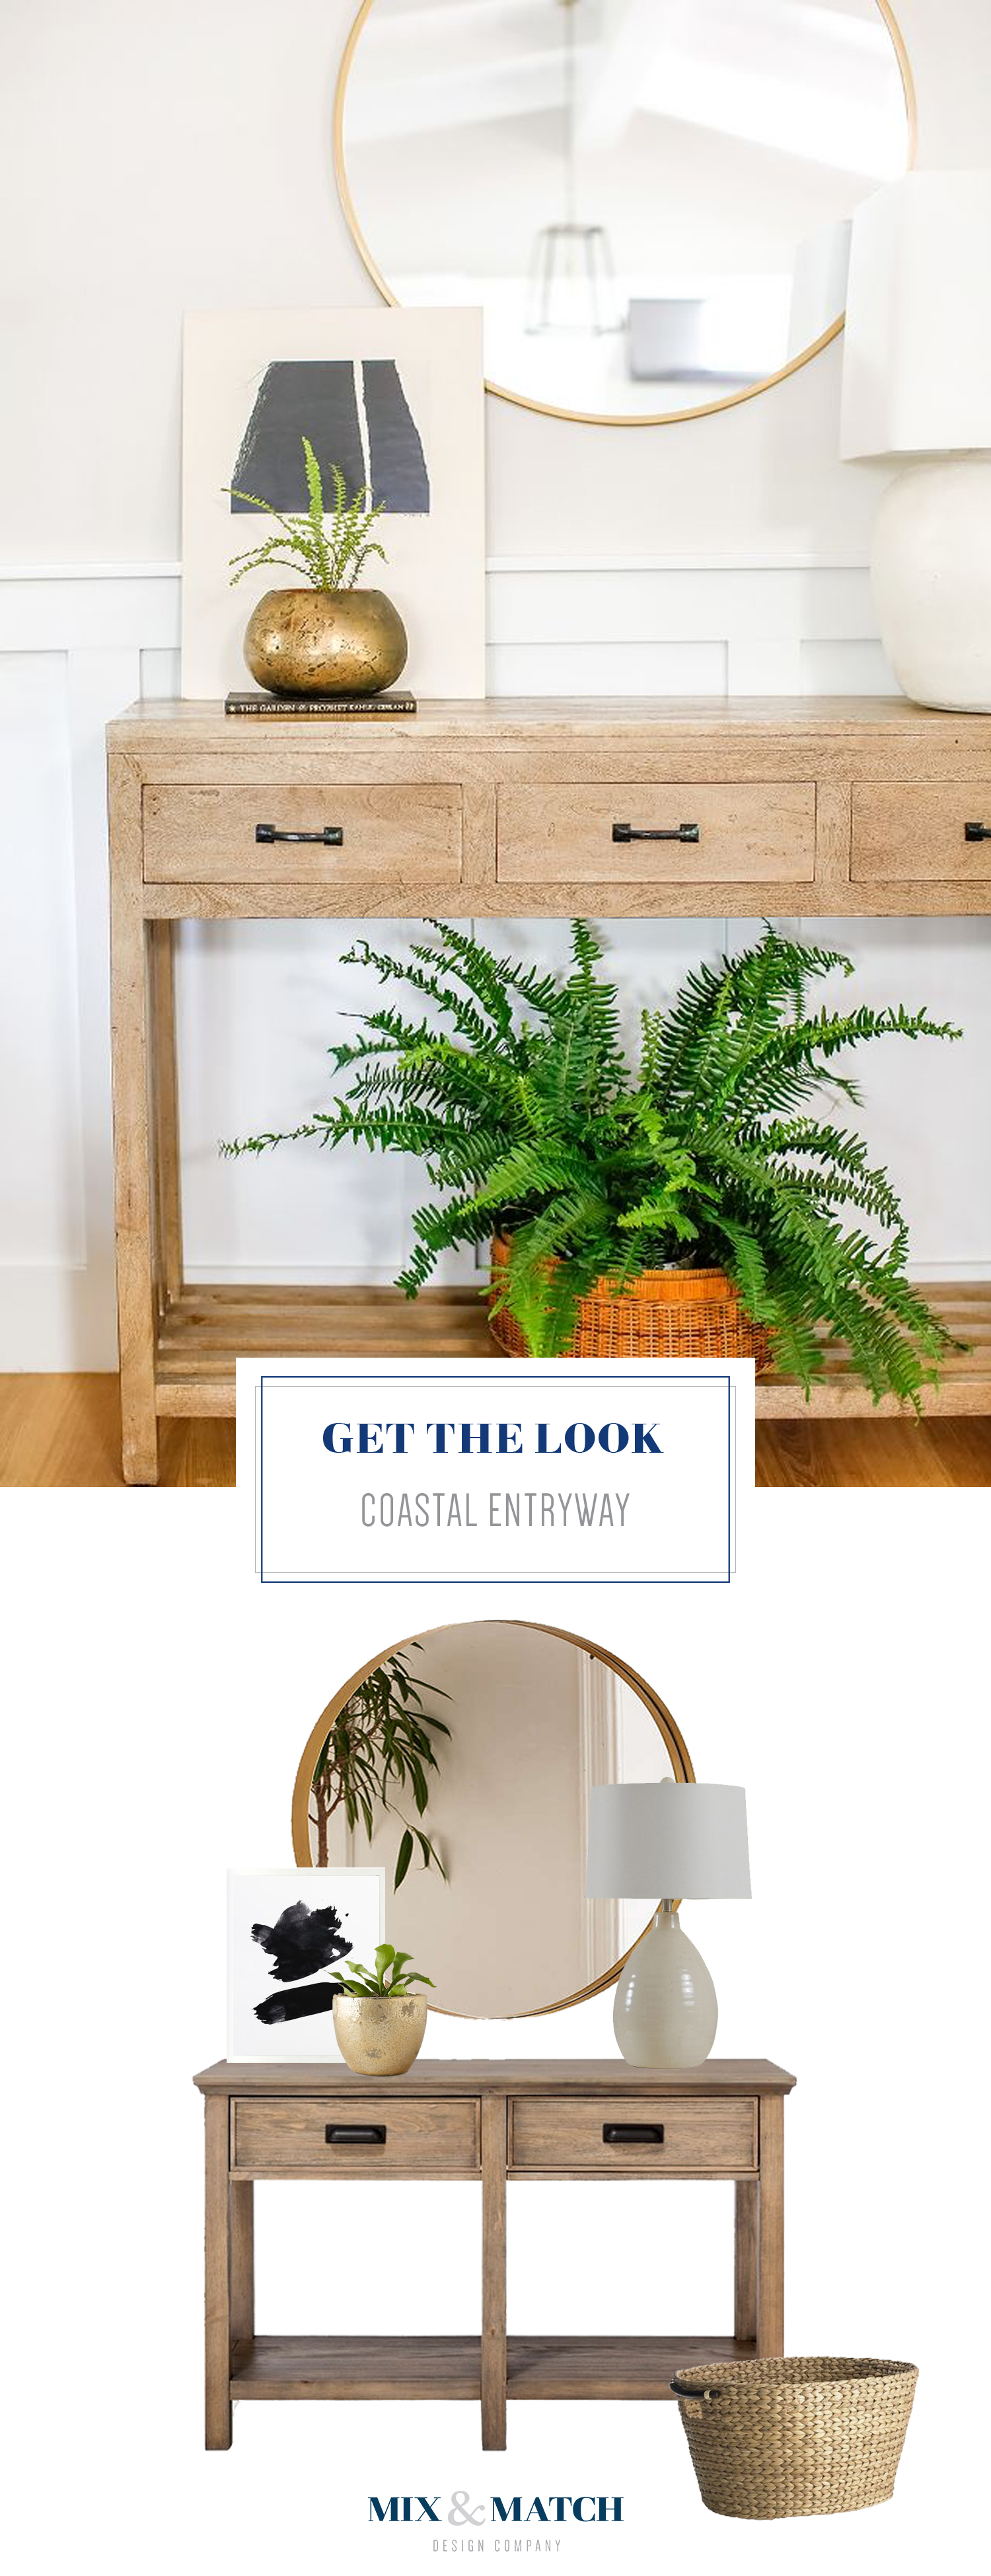 Get the look of this coastal inspired entryway. Pair a console table with a round mirror, and add a few accessories to finish the look!